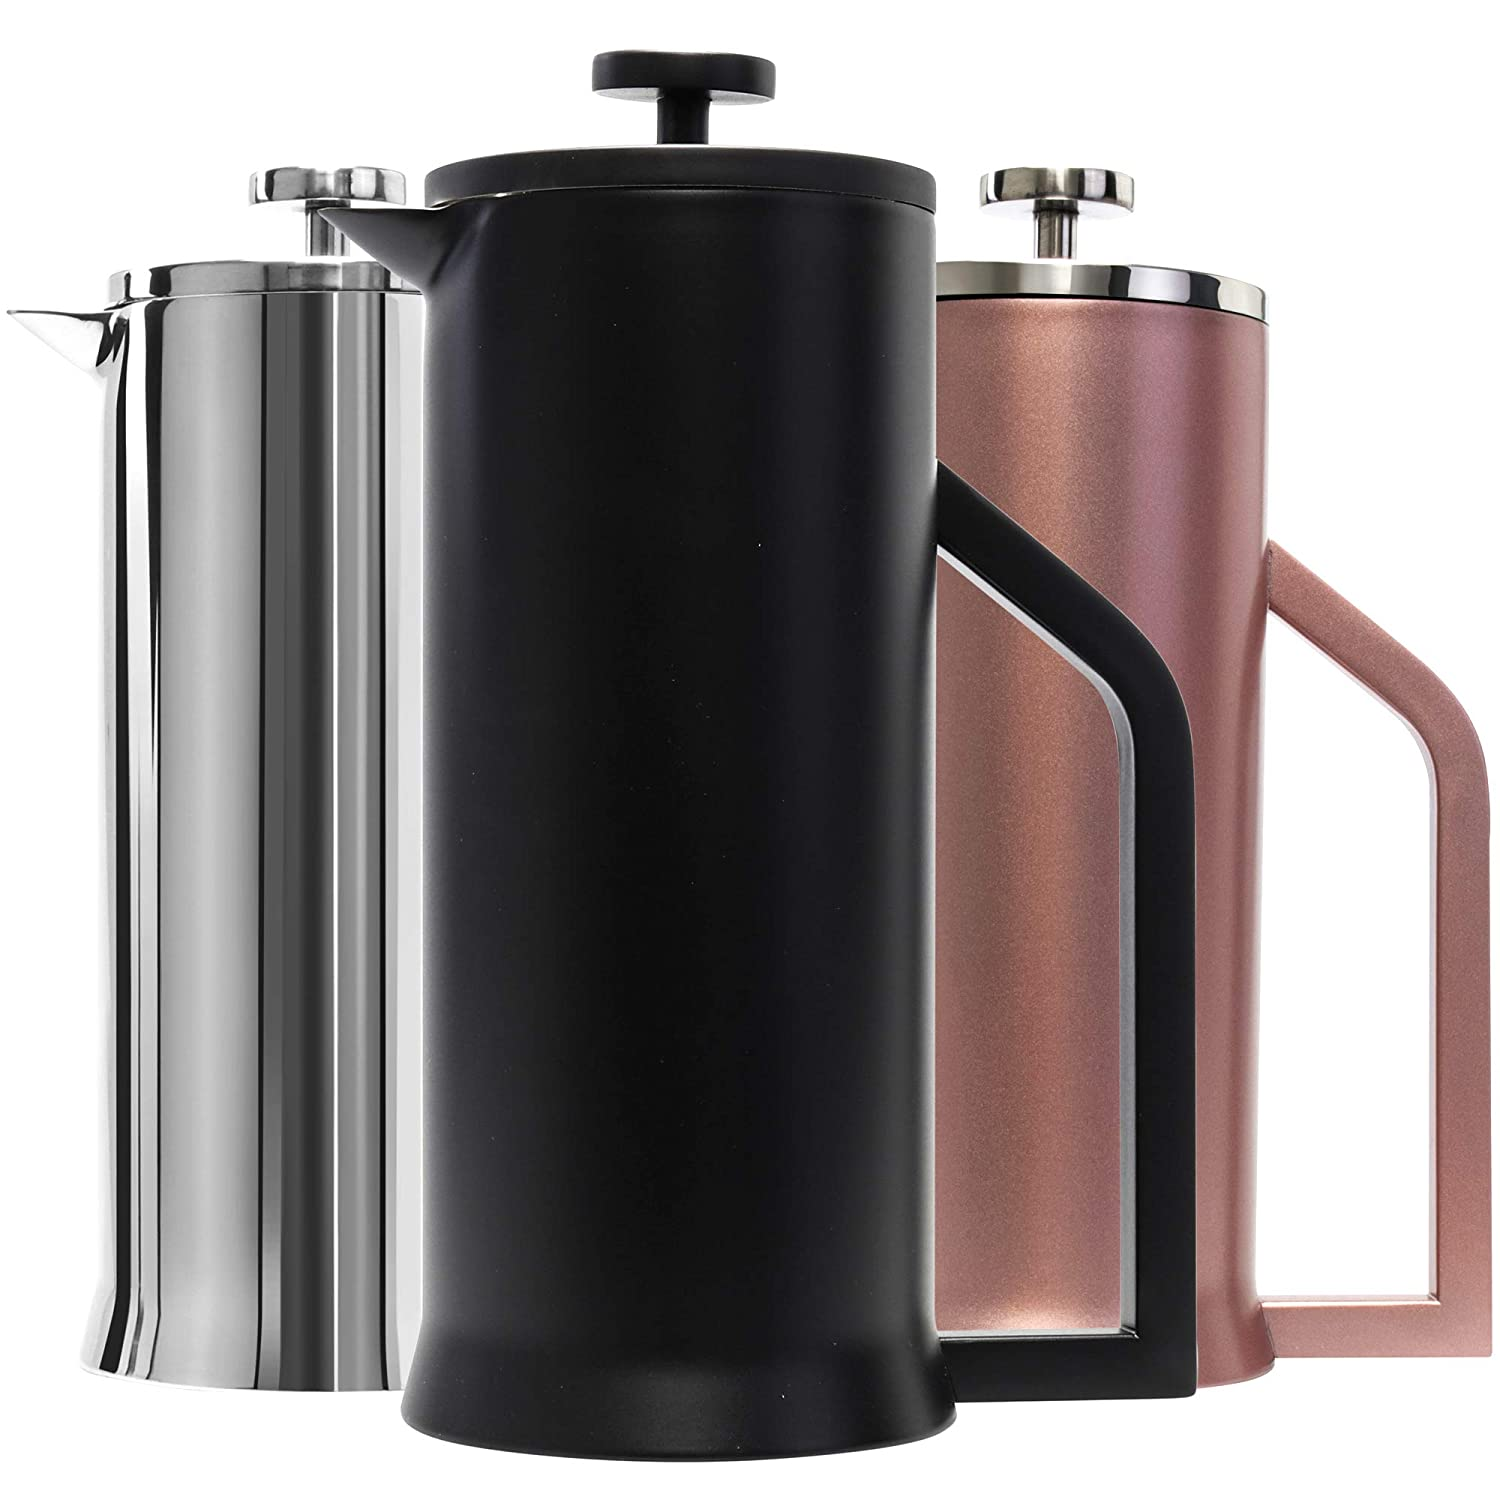 Lafeeca French Press Coffee Maker – Stainless Steel Double Wall Vacuum Insulated – Large Capacity Thermal Brewer – Black